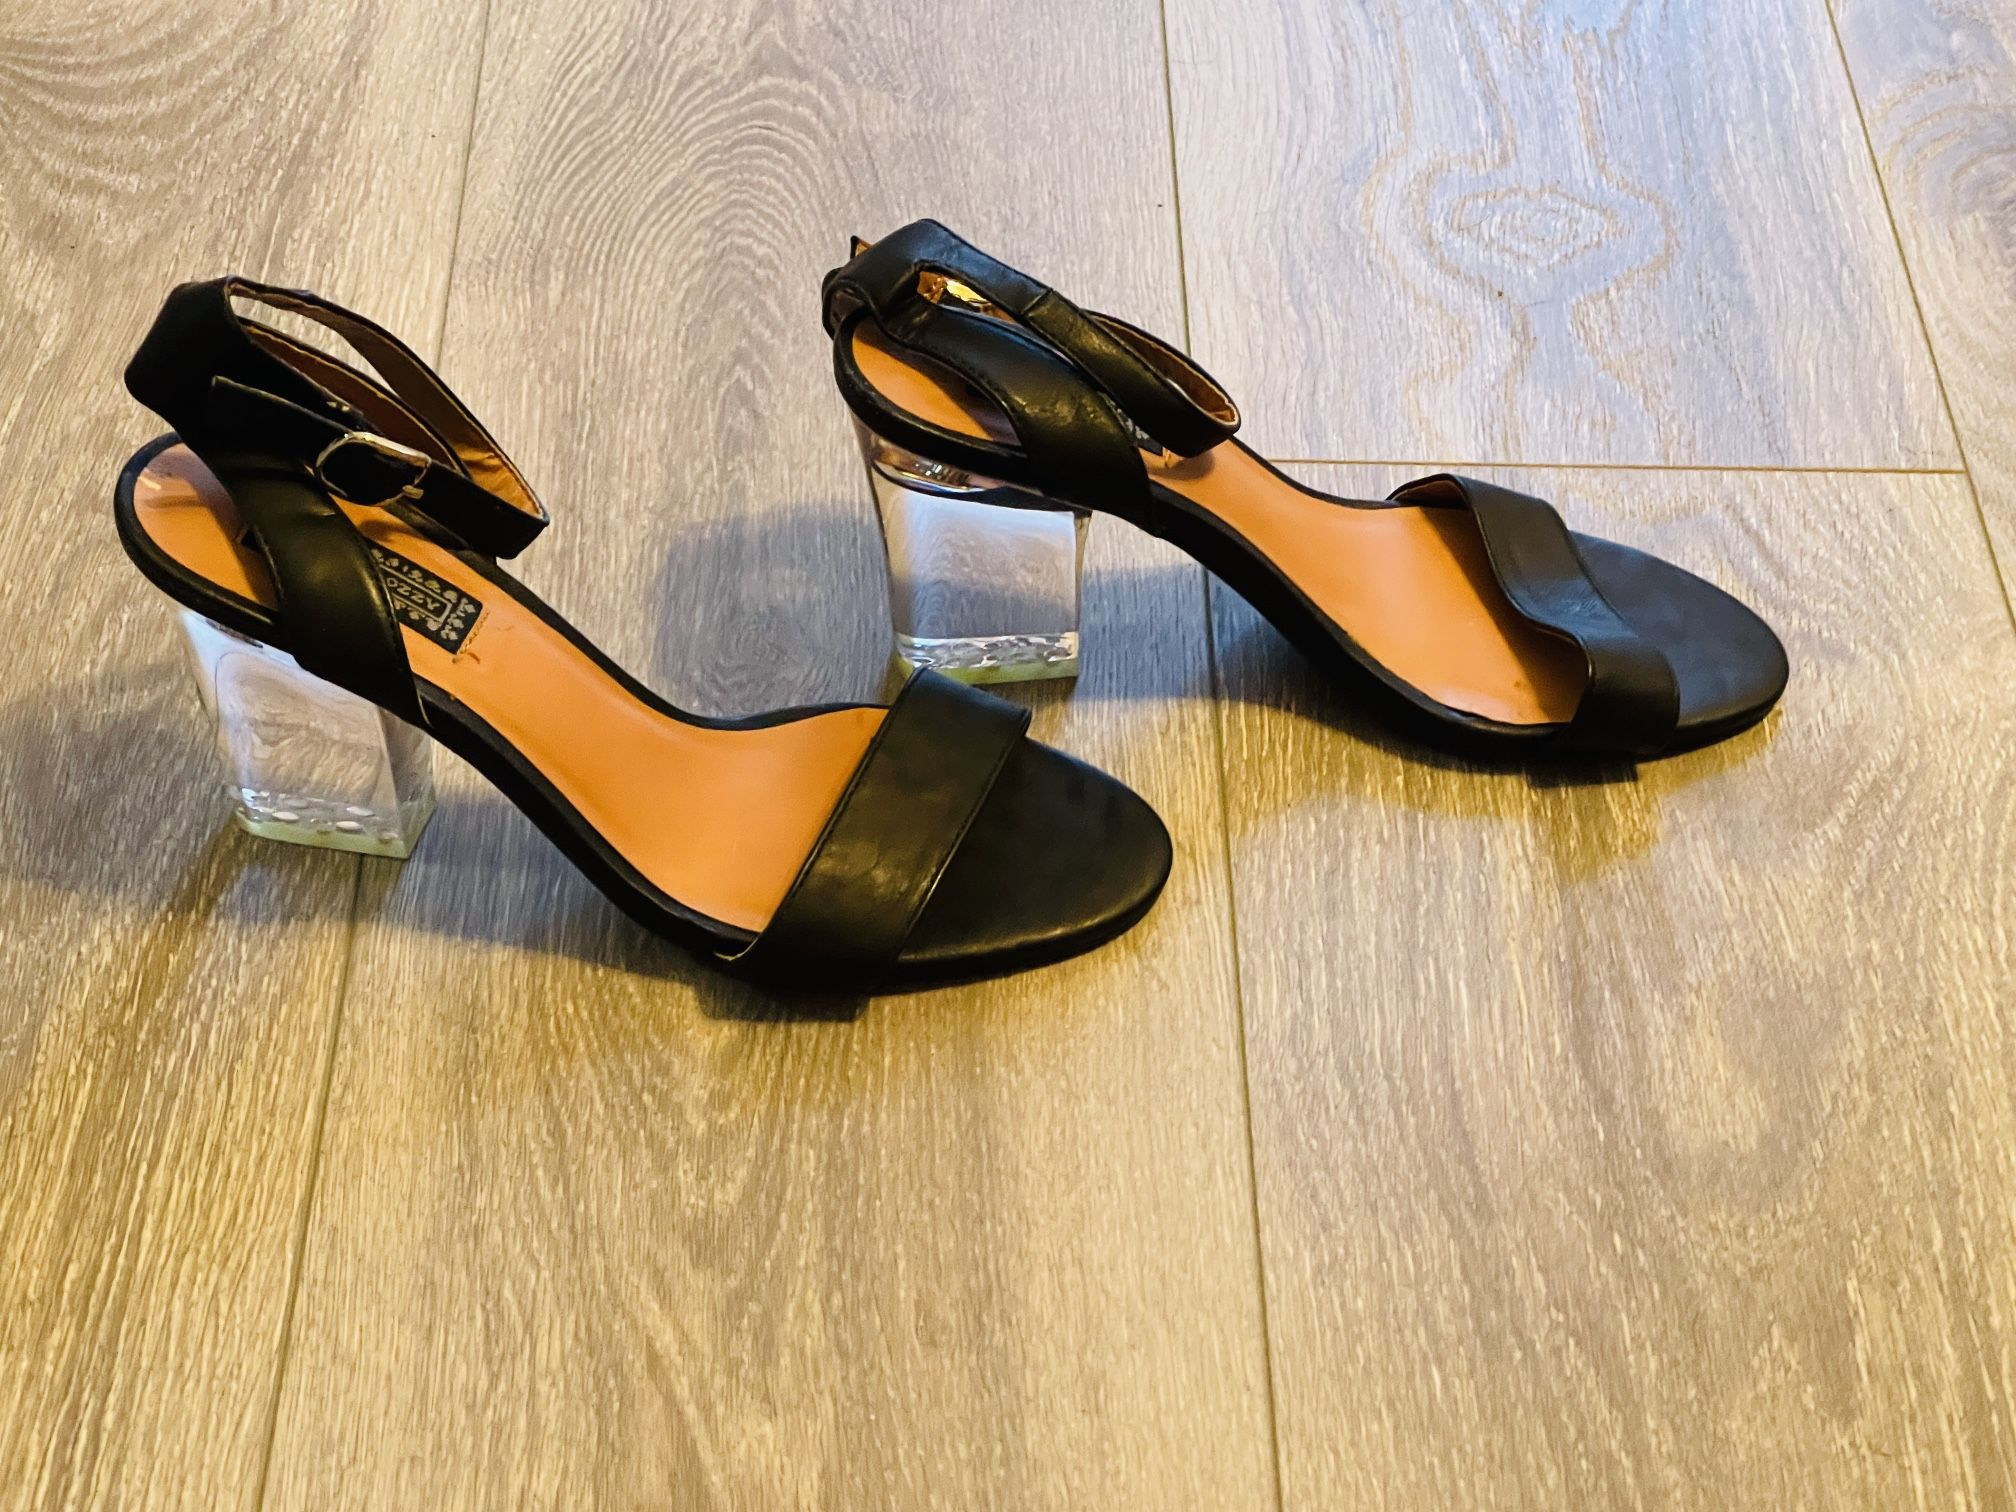 Urban outfitters clear heels.